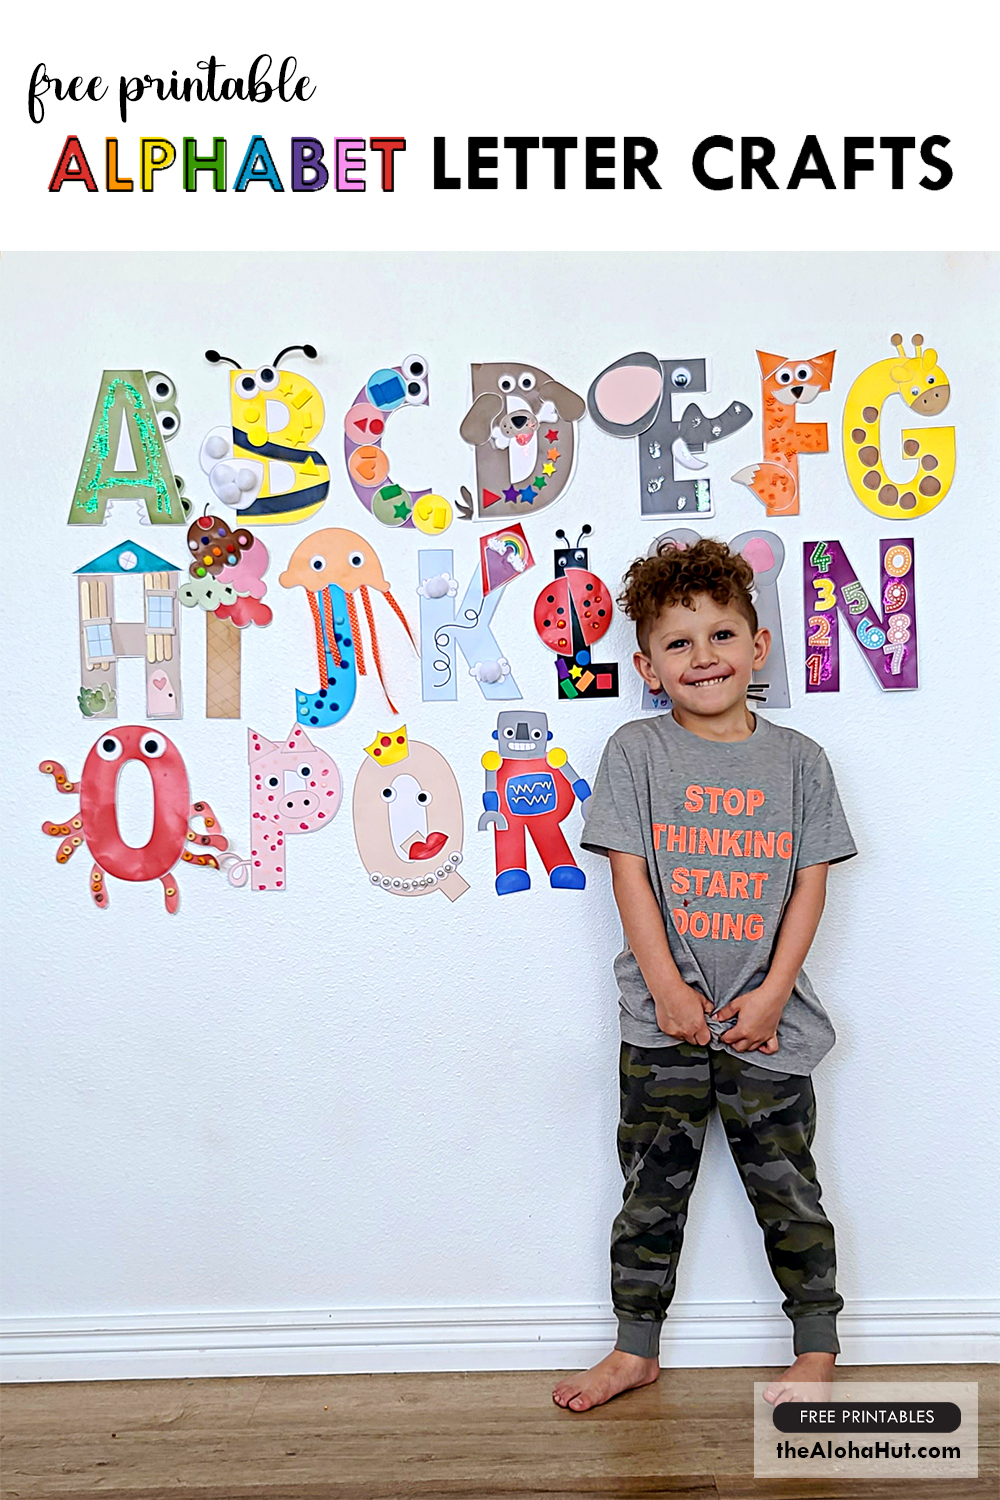 Alphabet Letter Crafts - Letters O P Q R - free printables 4 by the Aloha Hut